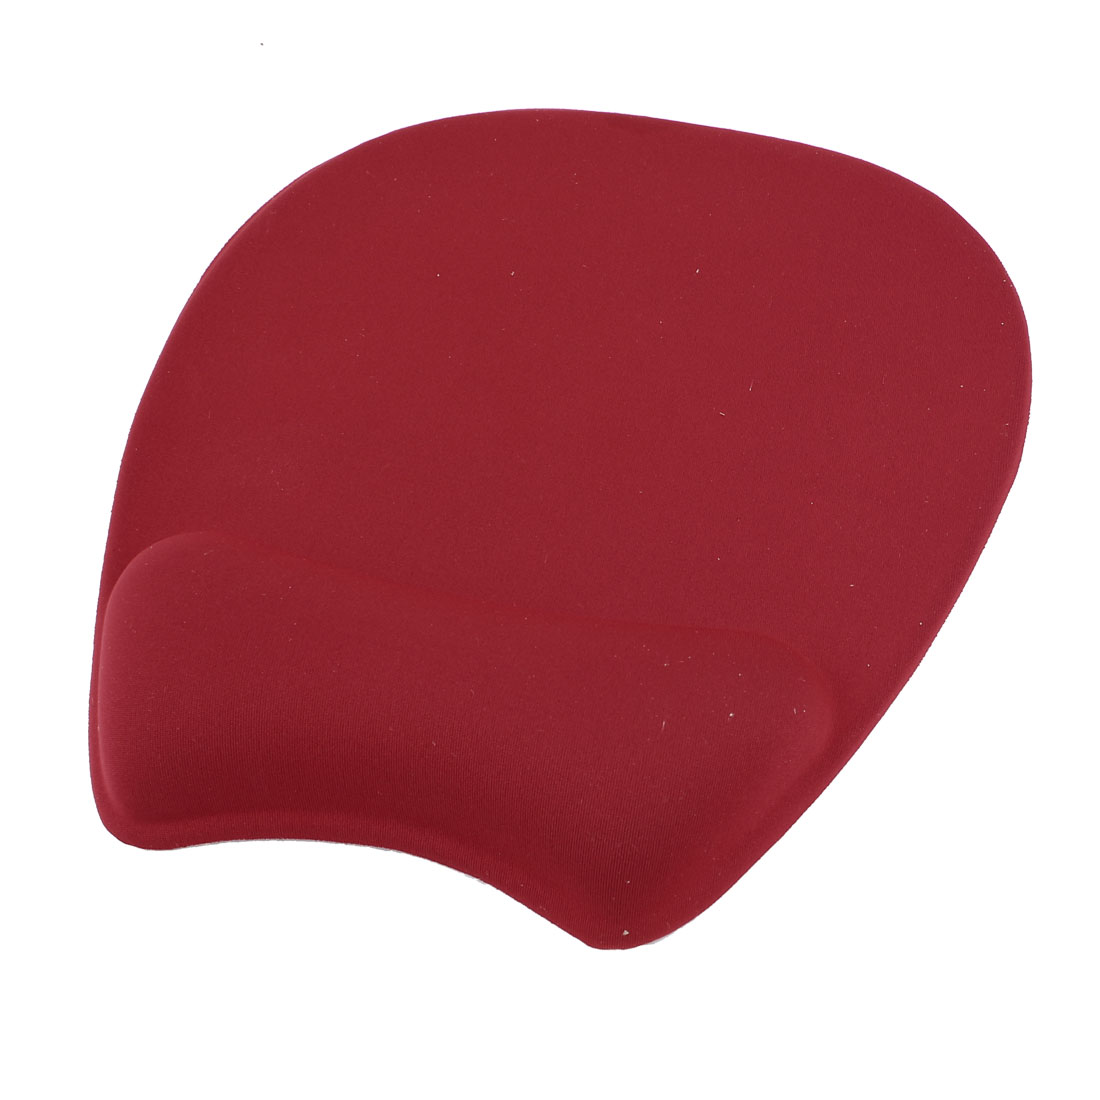 Red Silicone Gel Wrist Rest Nonslip Mouse Pad Mat for Laptop Desktop